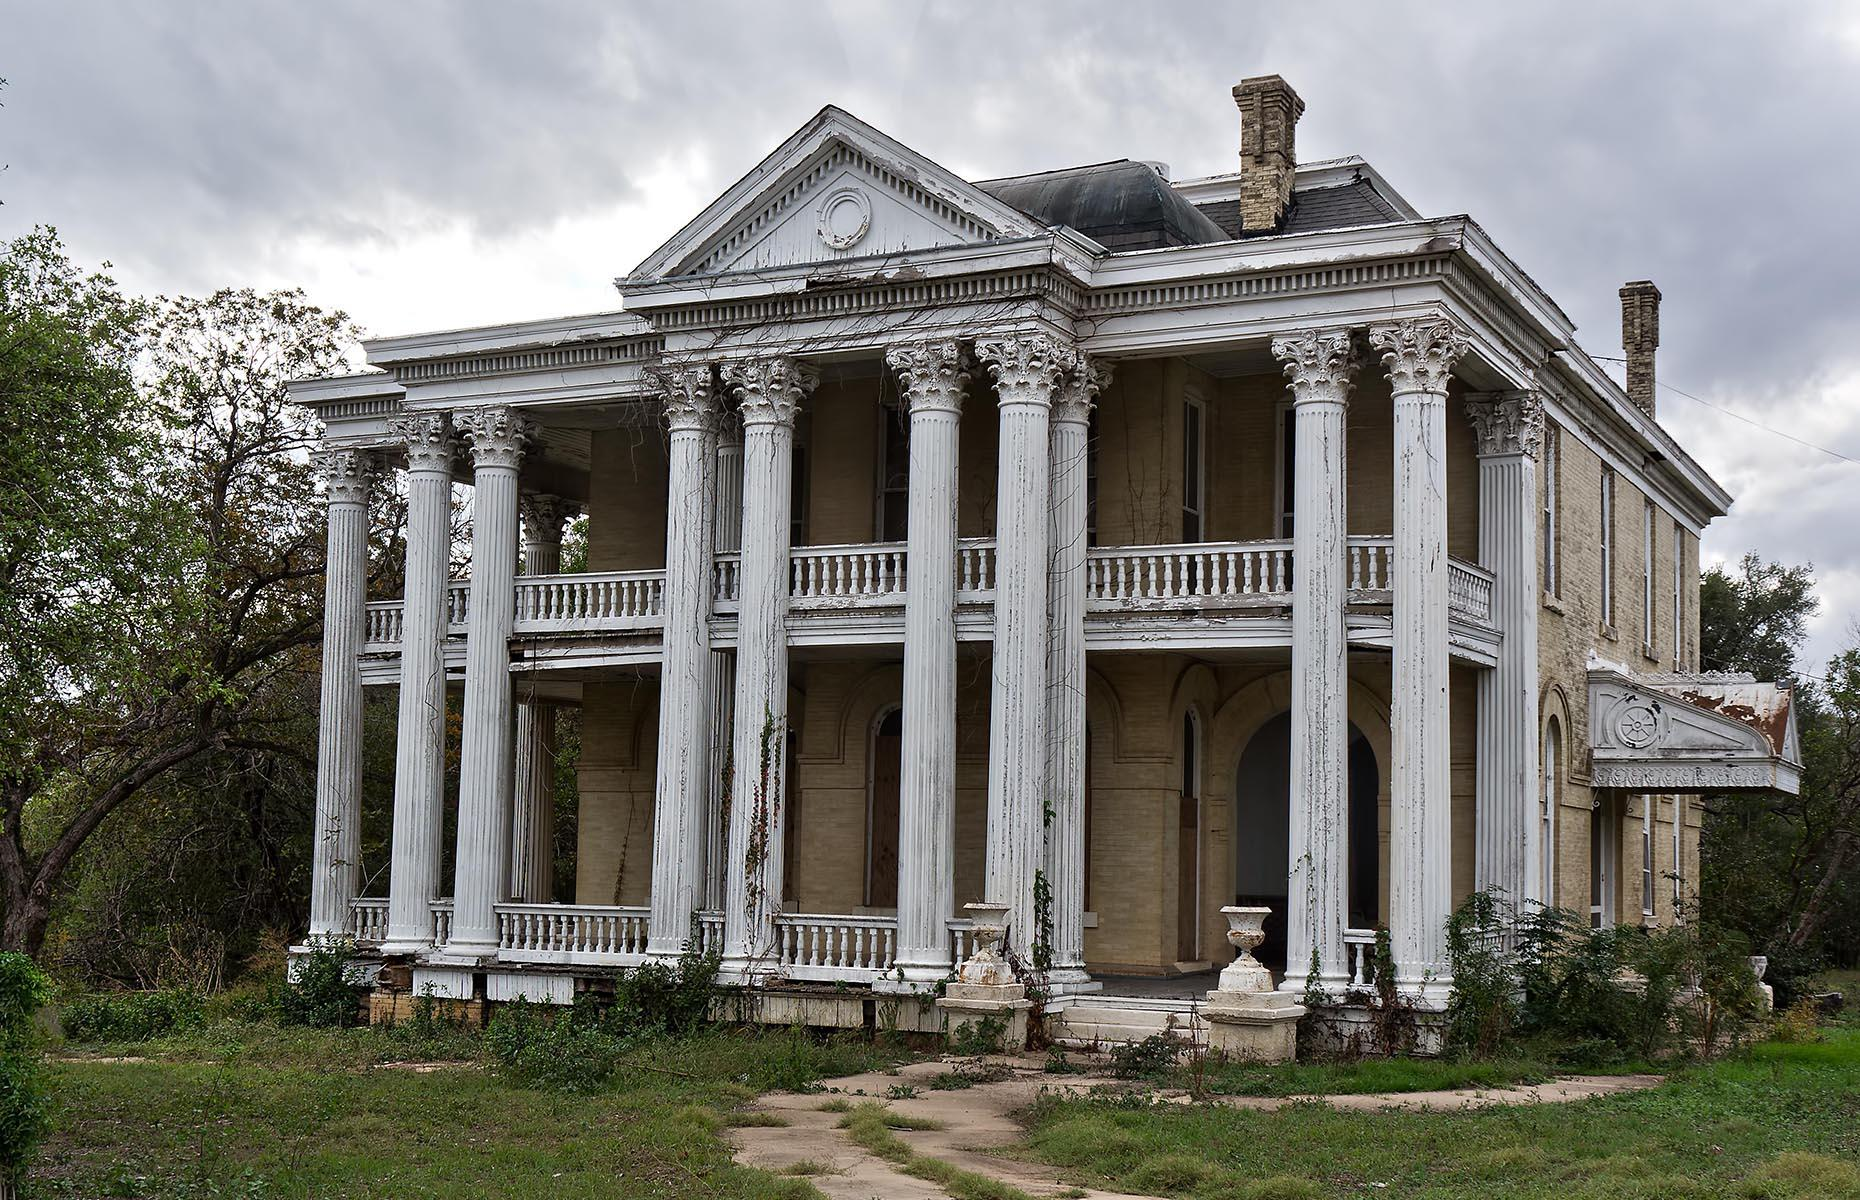 Slide 86 of 101: This elegant Greek Revival-style mansion remains an intriguing mystery. It's located in Gonzales, a small Texan city with a large concentration of stunning historic homes. This one, finished in 1901, was the work of lauded Texas architect James Riely Gordon. It was built for lawyer and politician James Francis Miller, who sadly died soon after its completion.